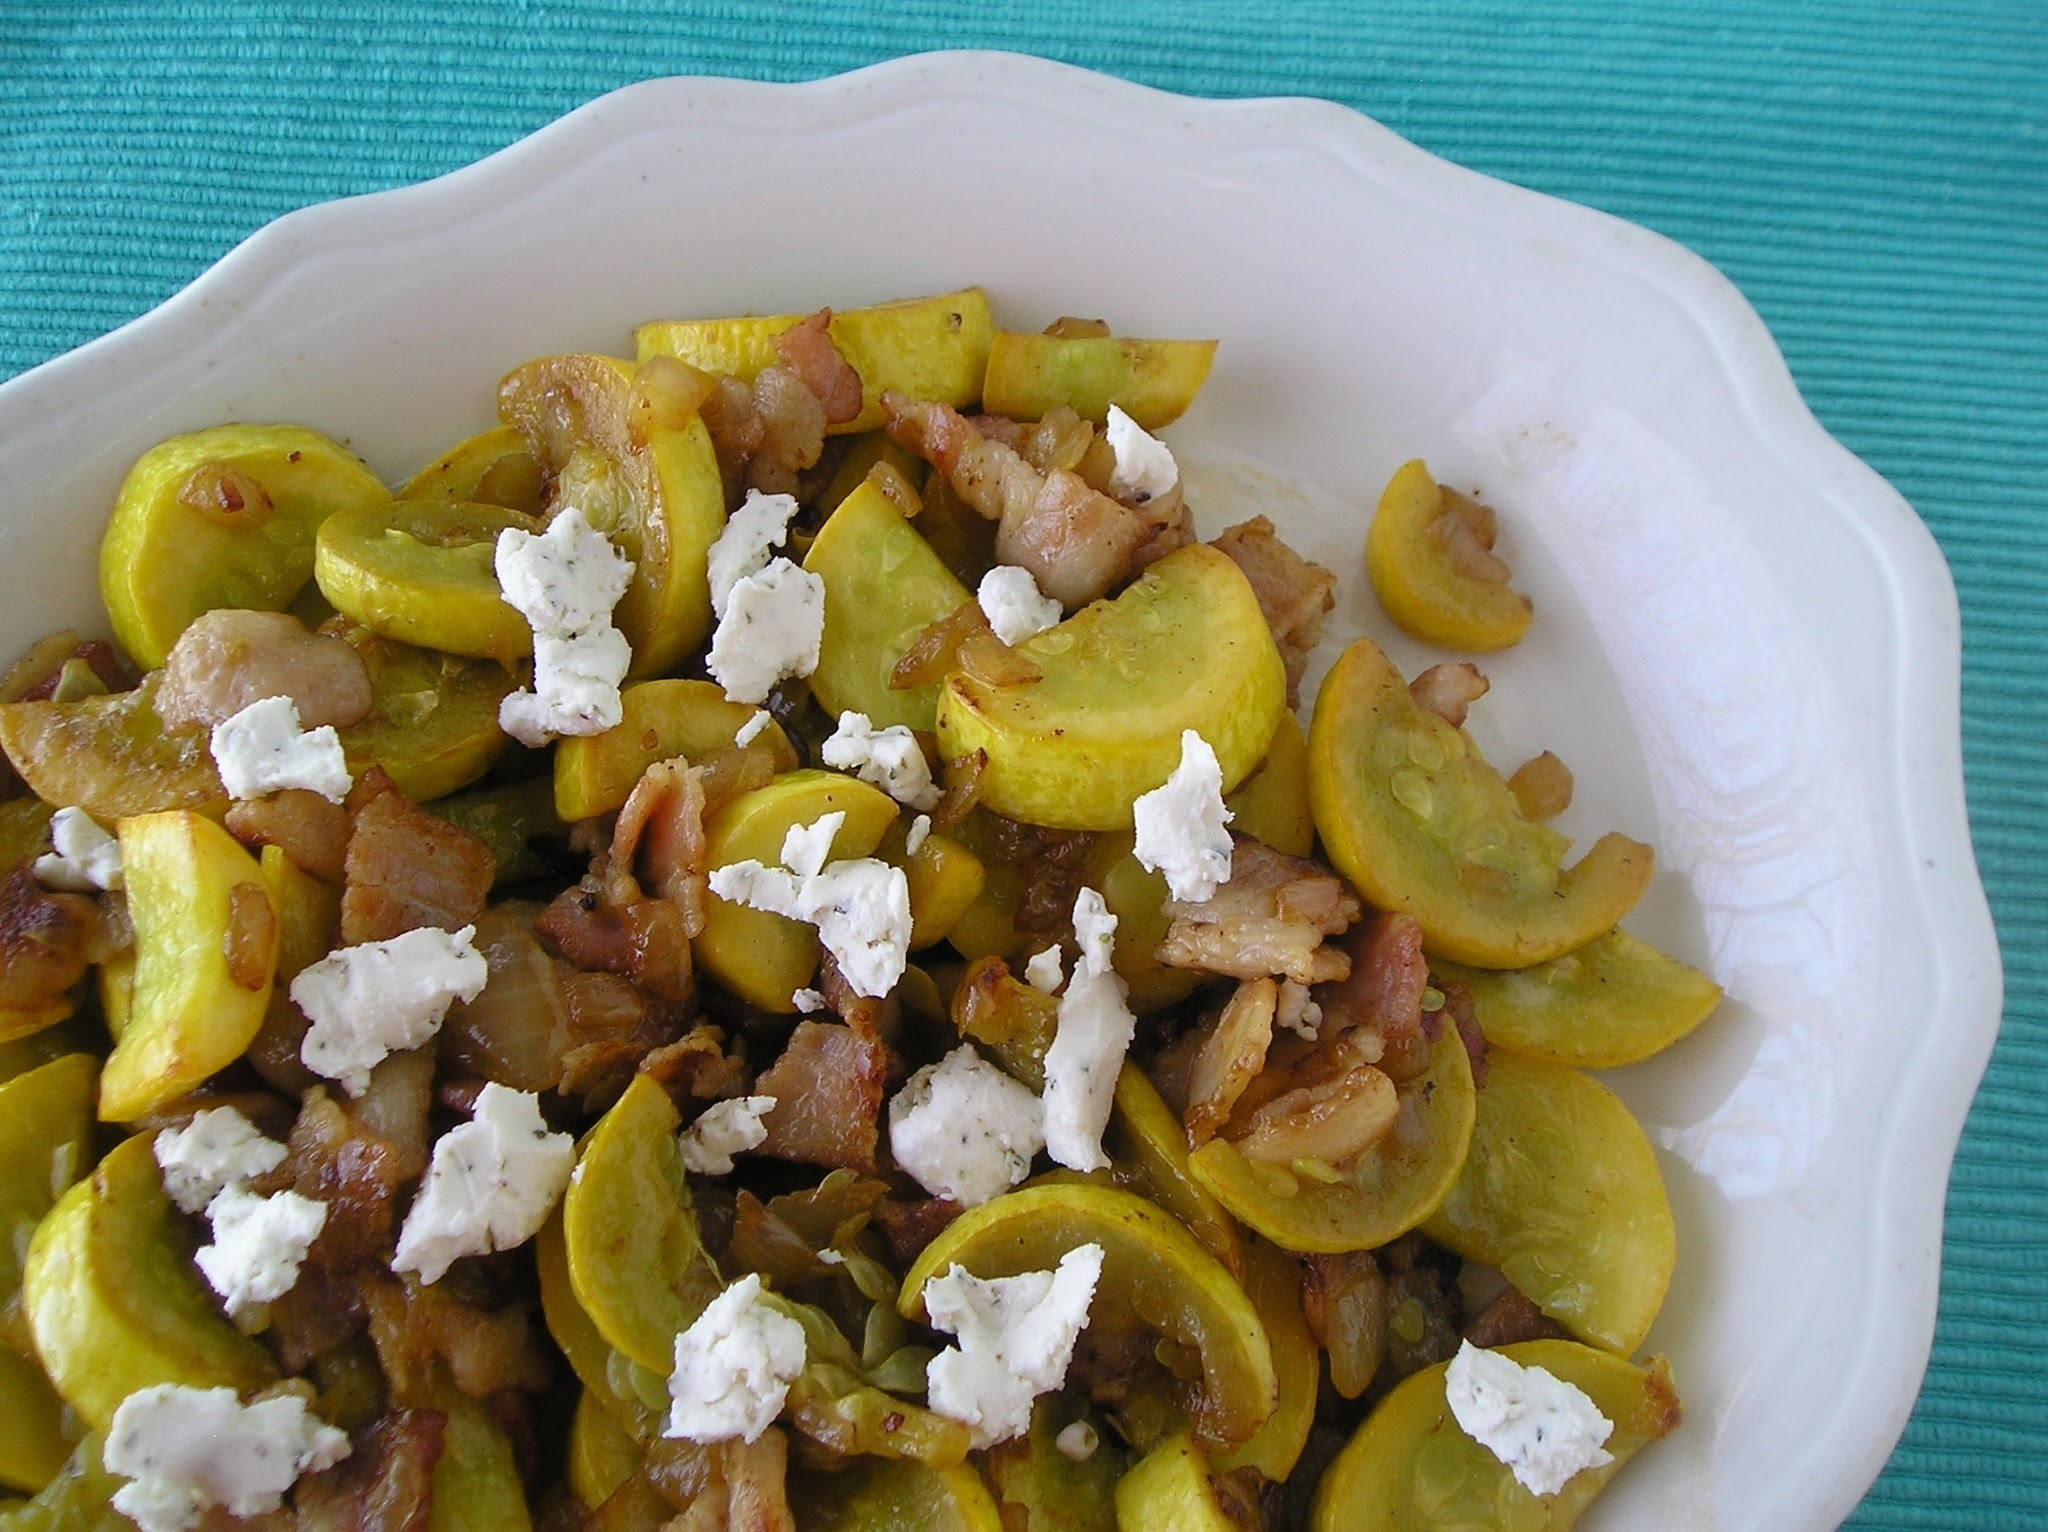 Secret Recipe Club: Summer Squash with Bacon and Goat Cheese